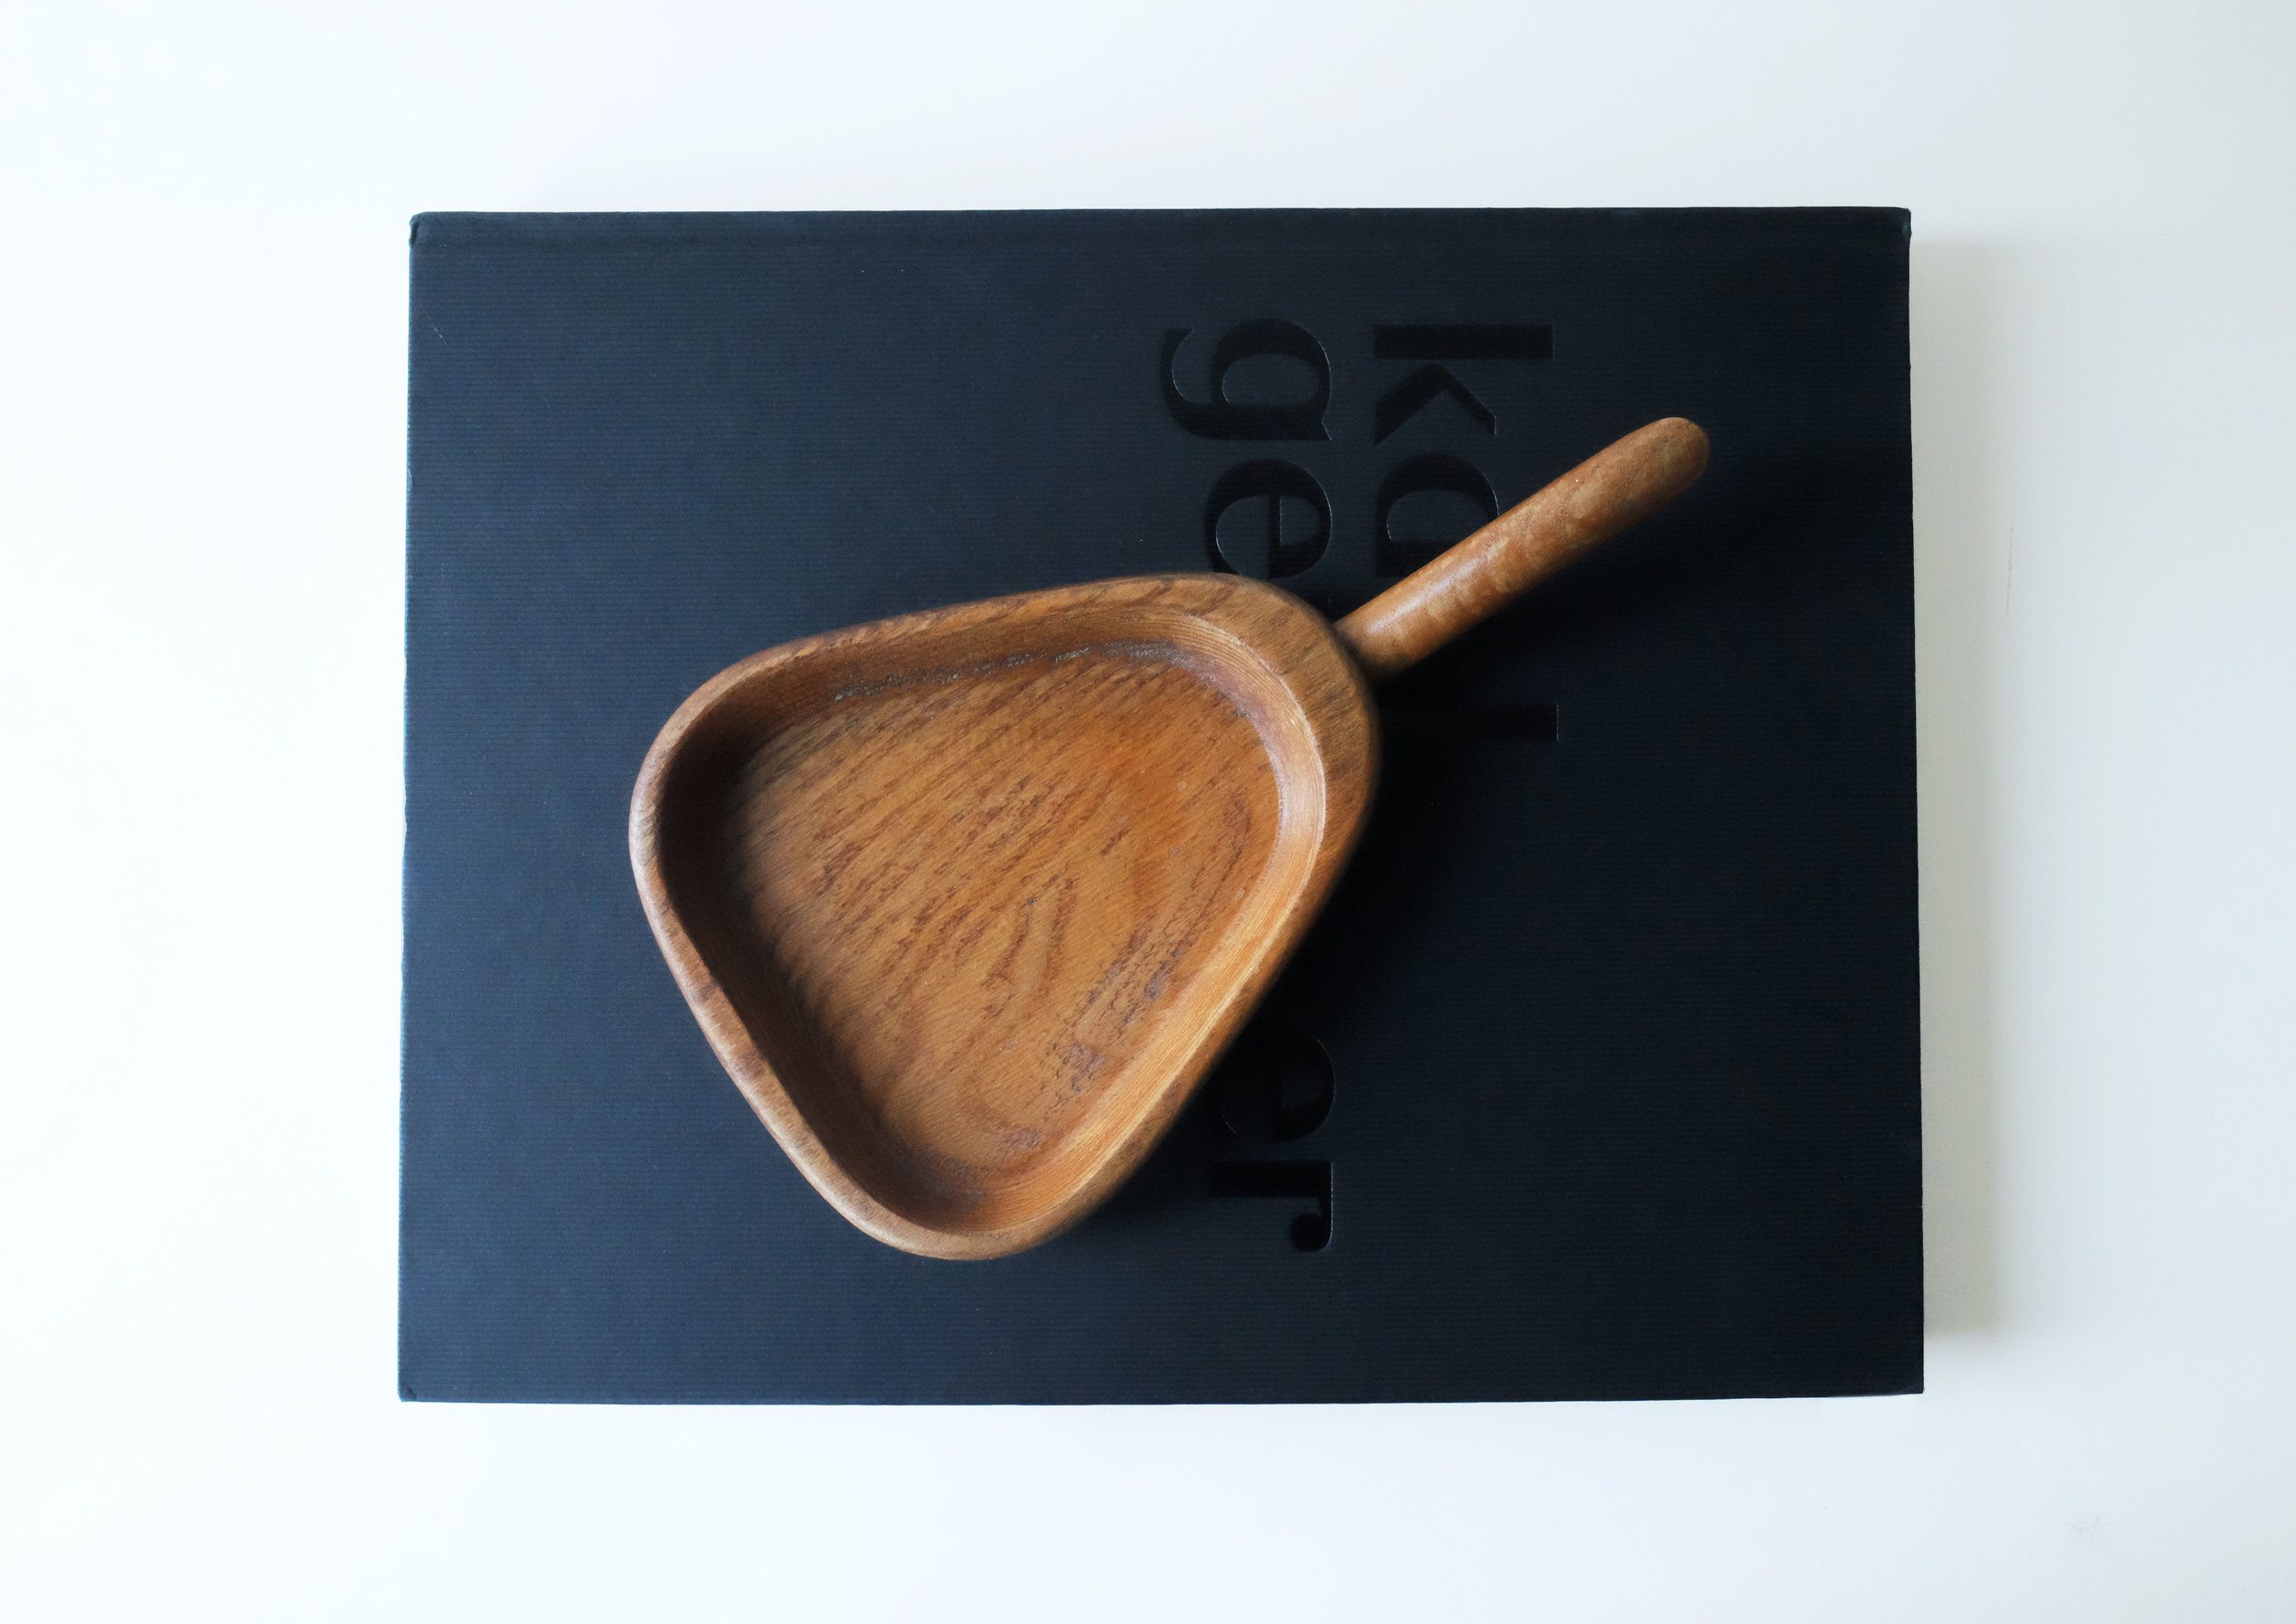 Wooden Plate |  £ 5  | London, UK  It looks like dustpan. Could be used for serving nibbles.